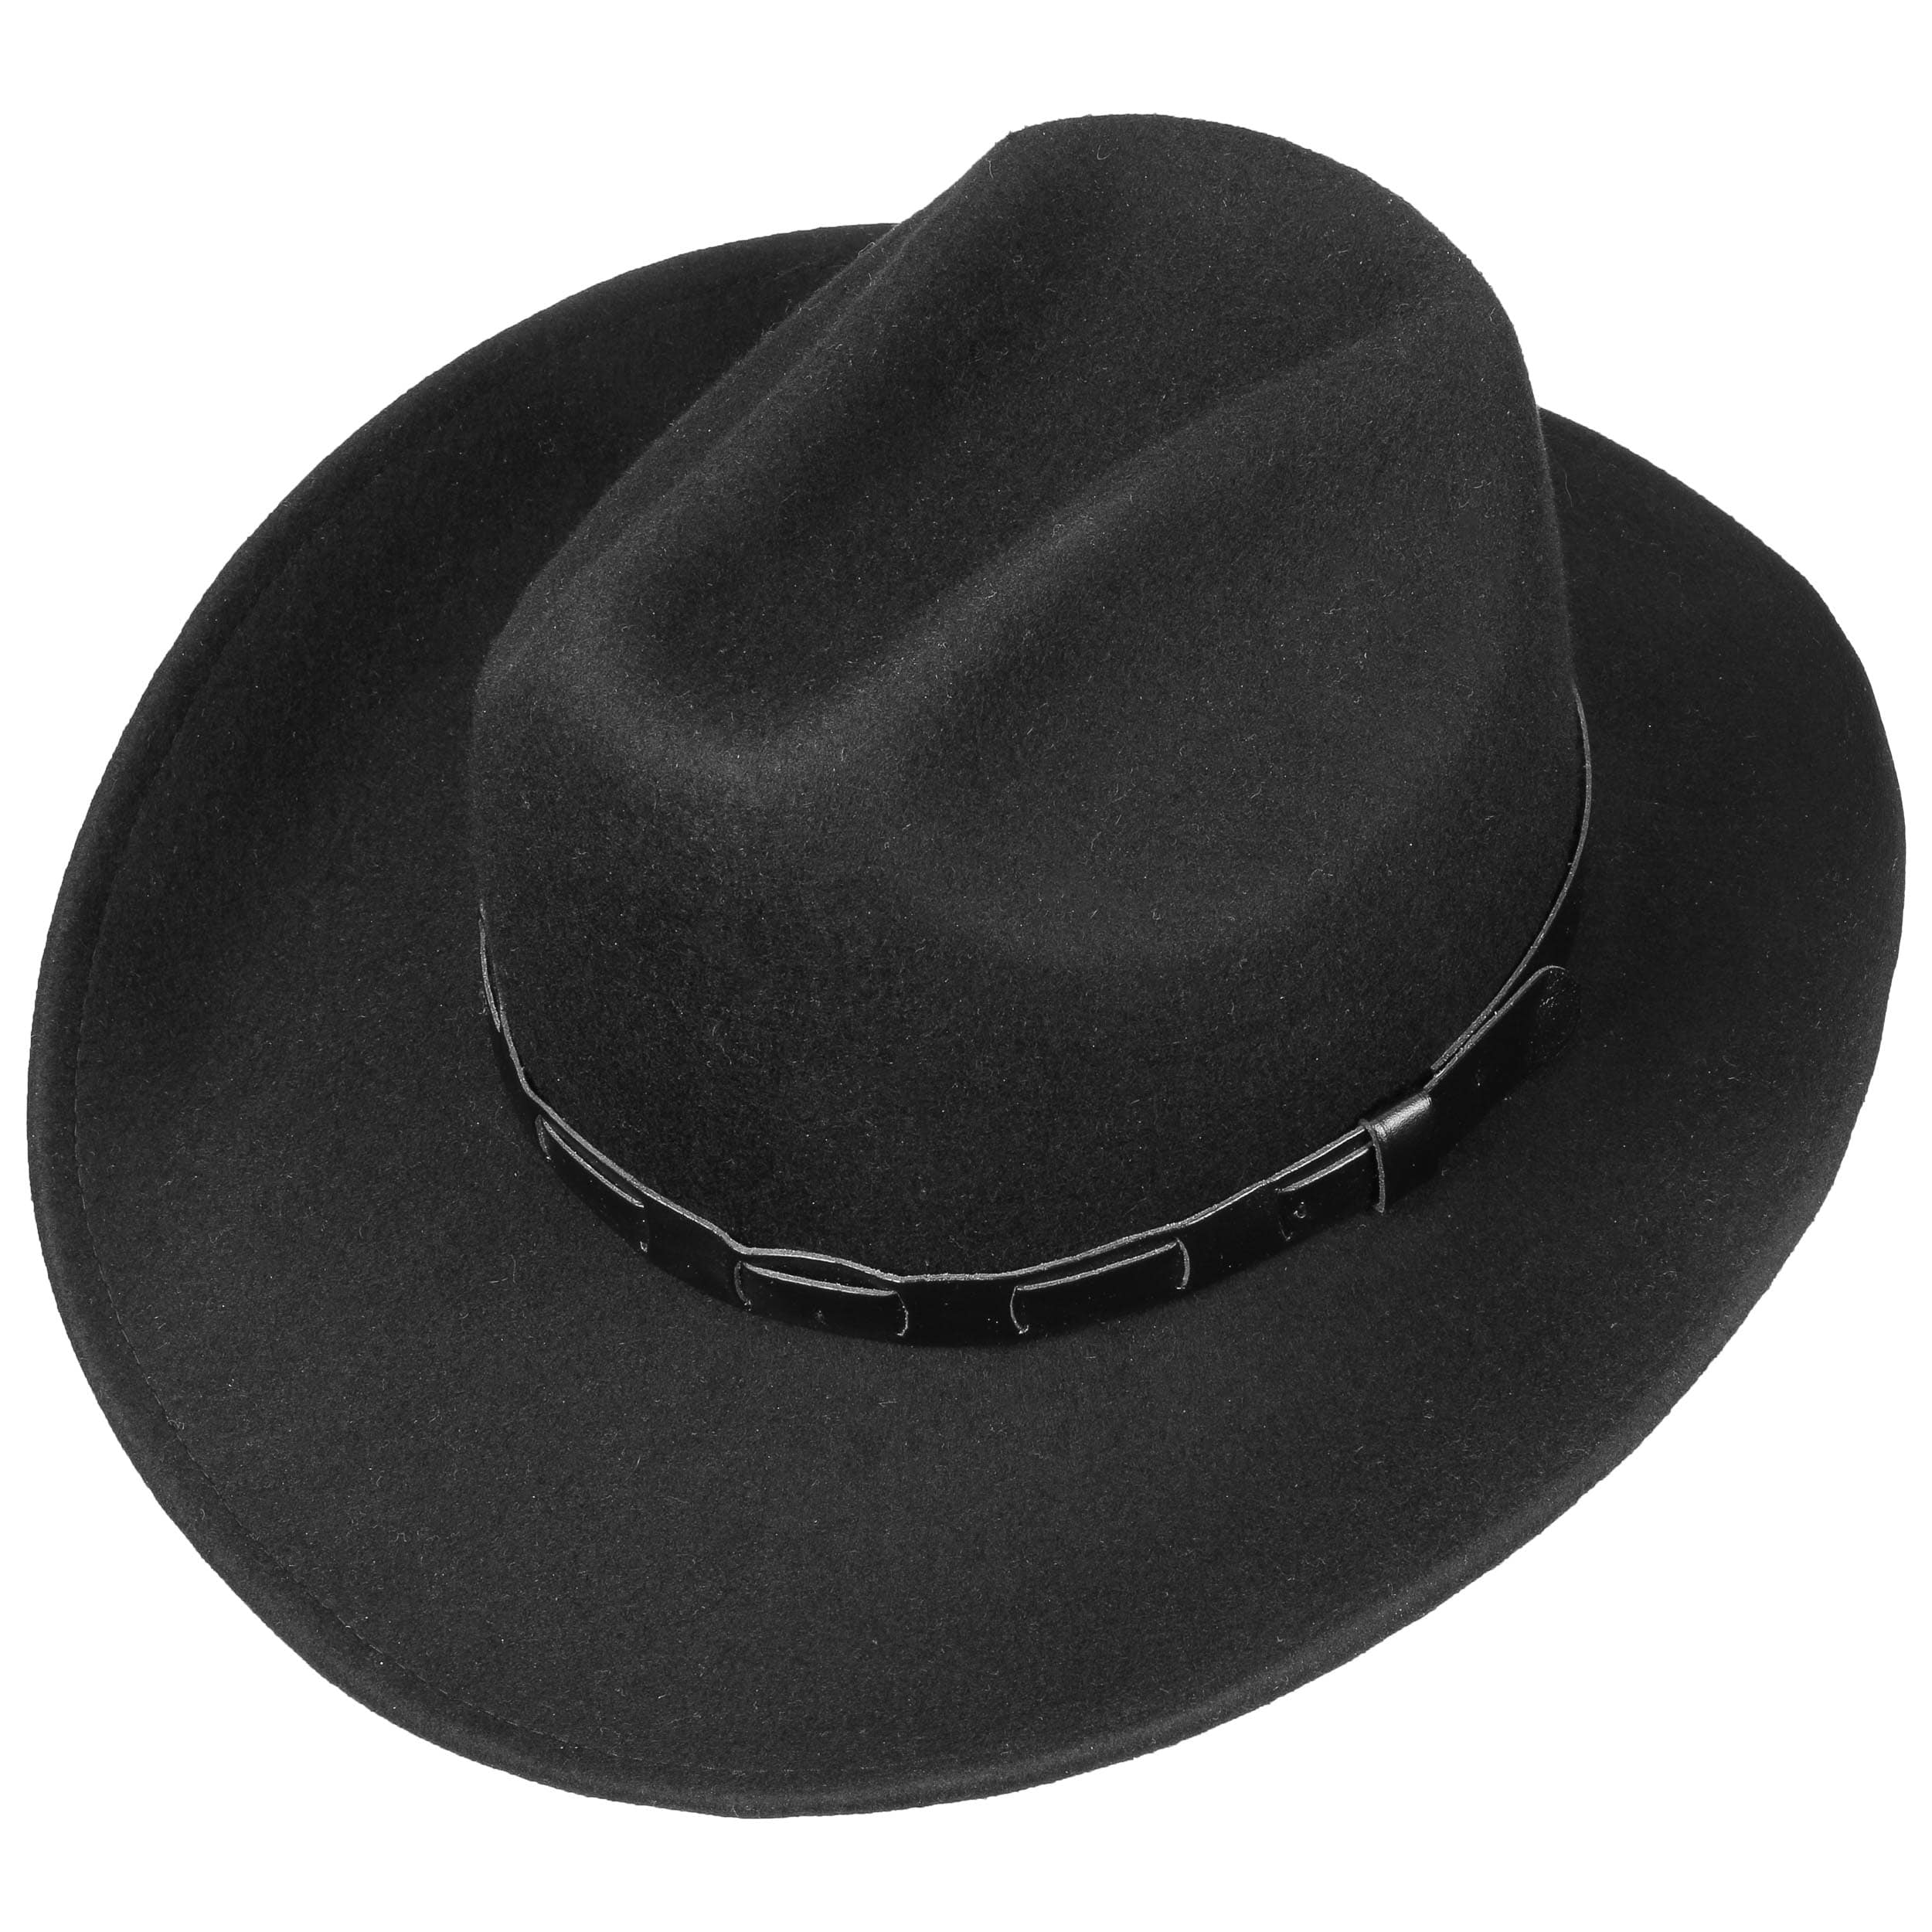 f16850e3295 Bill Cody Western Hat by Lipodo - black 1 ...